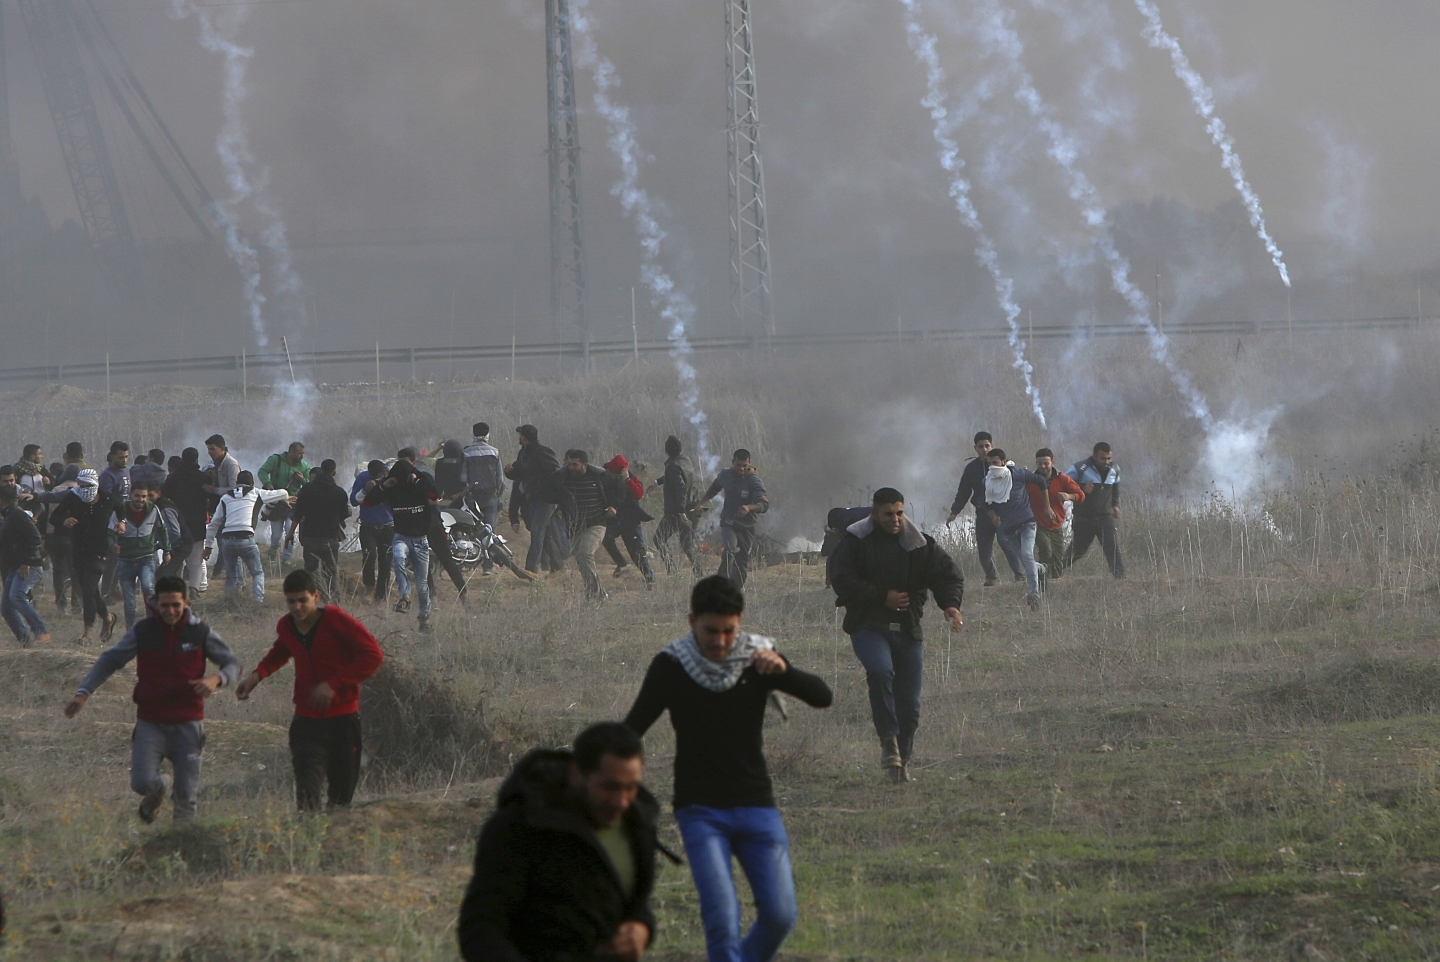 Palestinian protesters run from teargas fired by Israeli soldiers following the US decision to recognize Jerusalem as the capital of Israel. (AP Photo/Adel Hana)